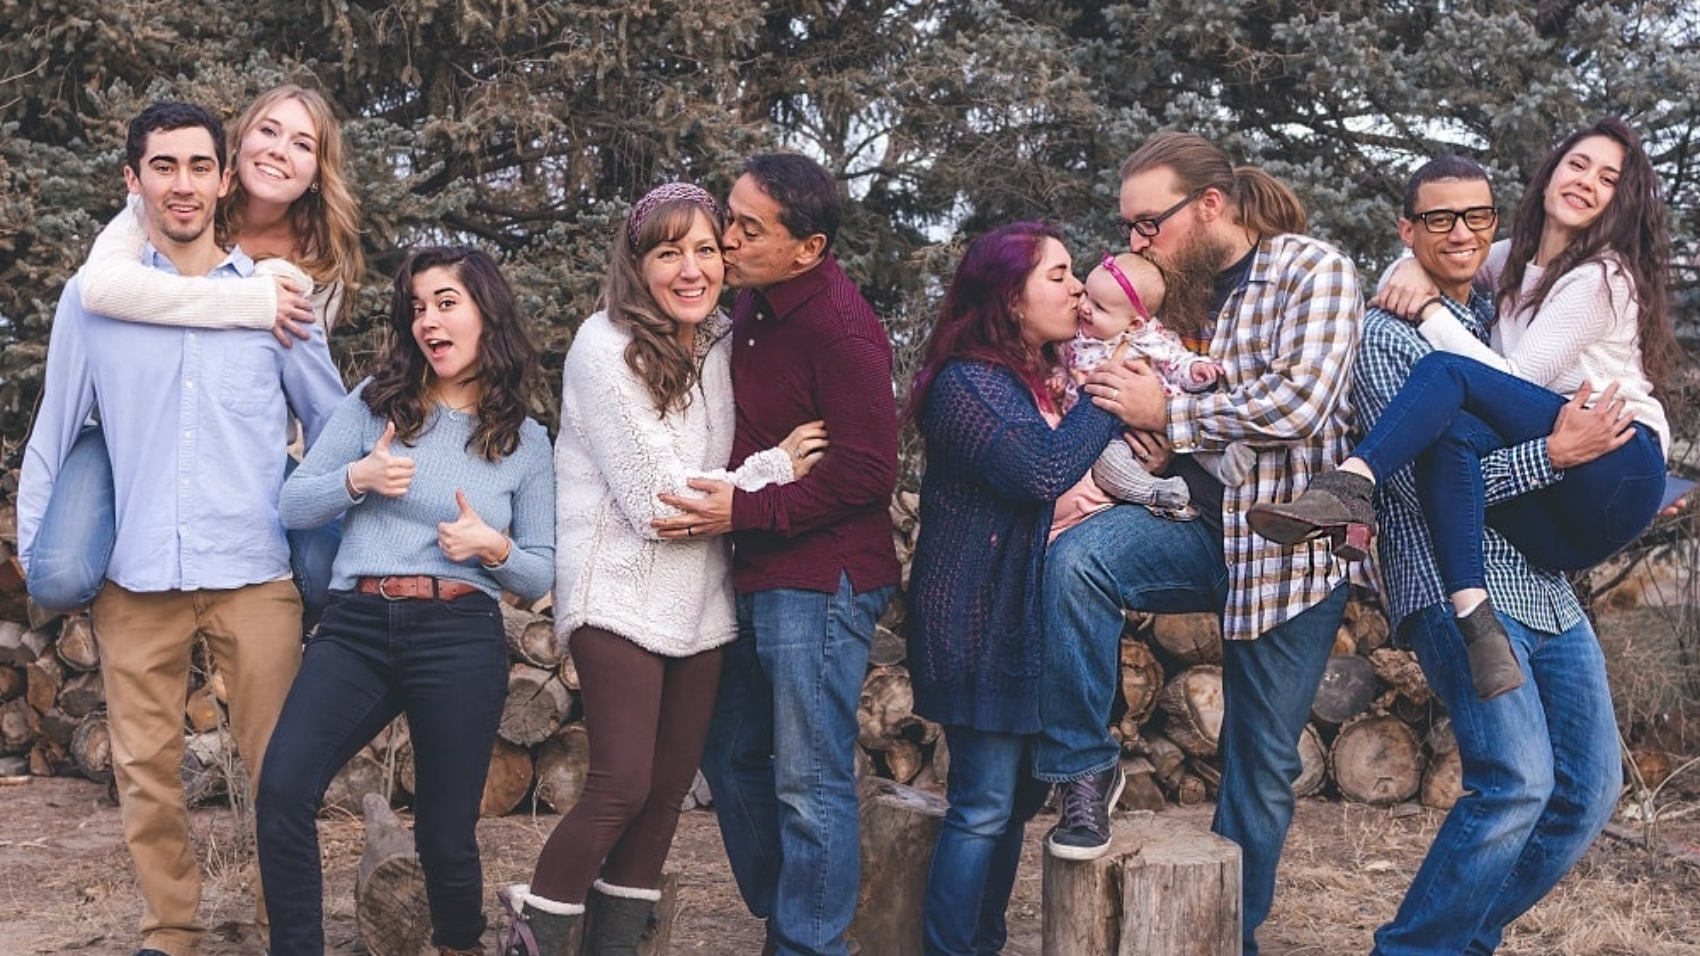 Building Bonds Within a Blended Family